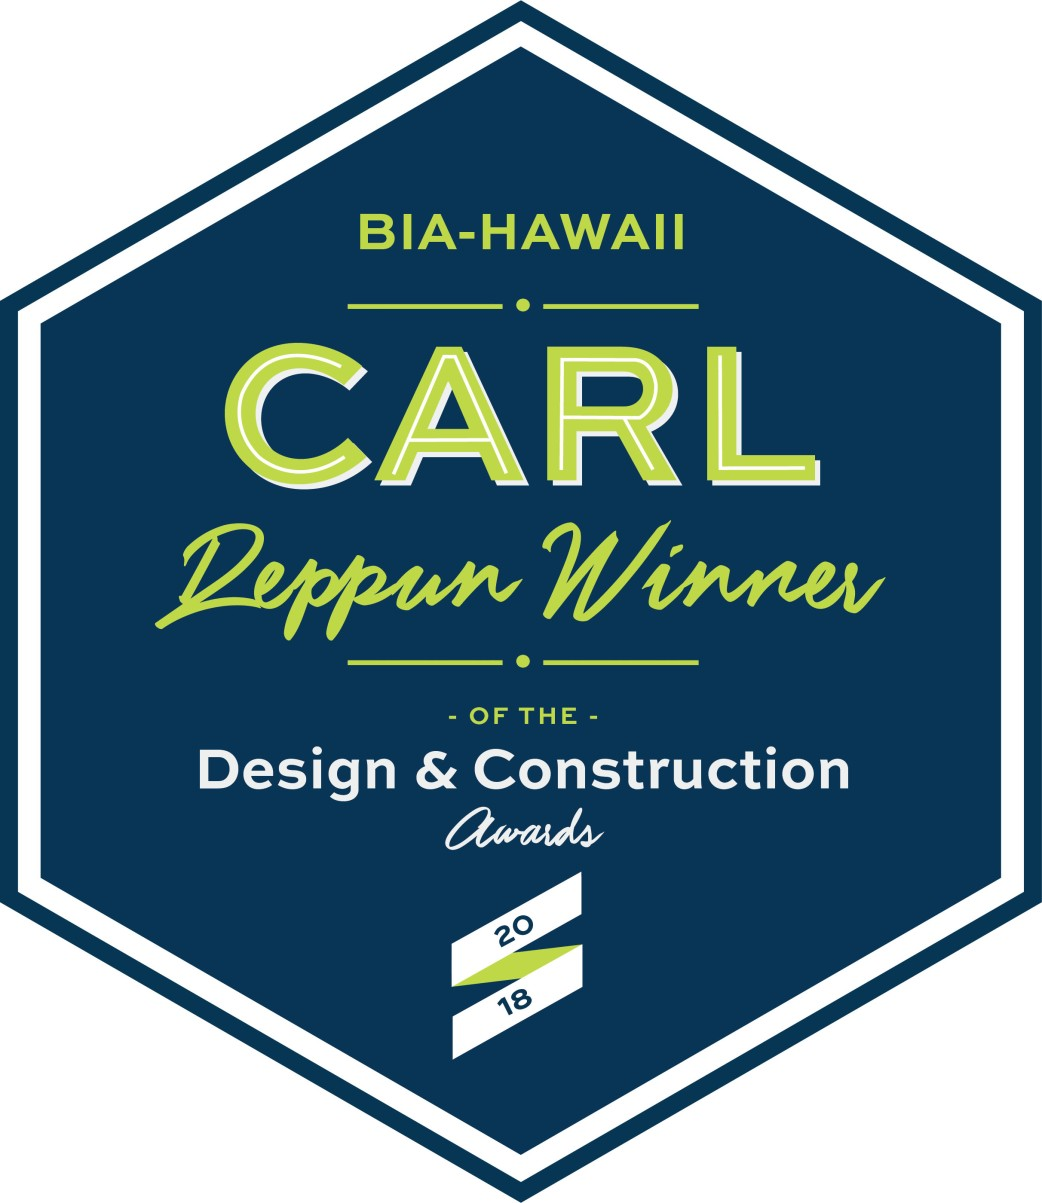 BIA_HI_BUILDING_INDUSTRY_CONSTRUCTION_CARL_REPPUN_BADGE copy